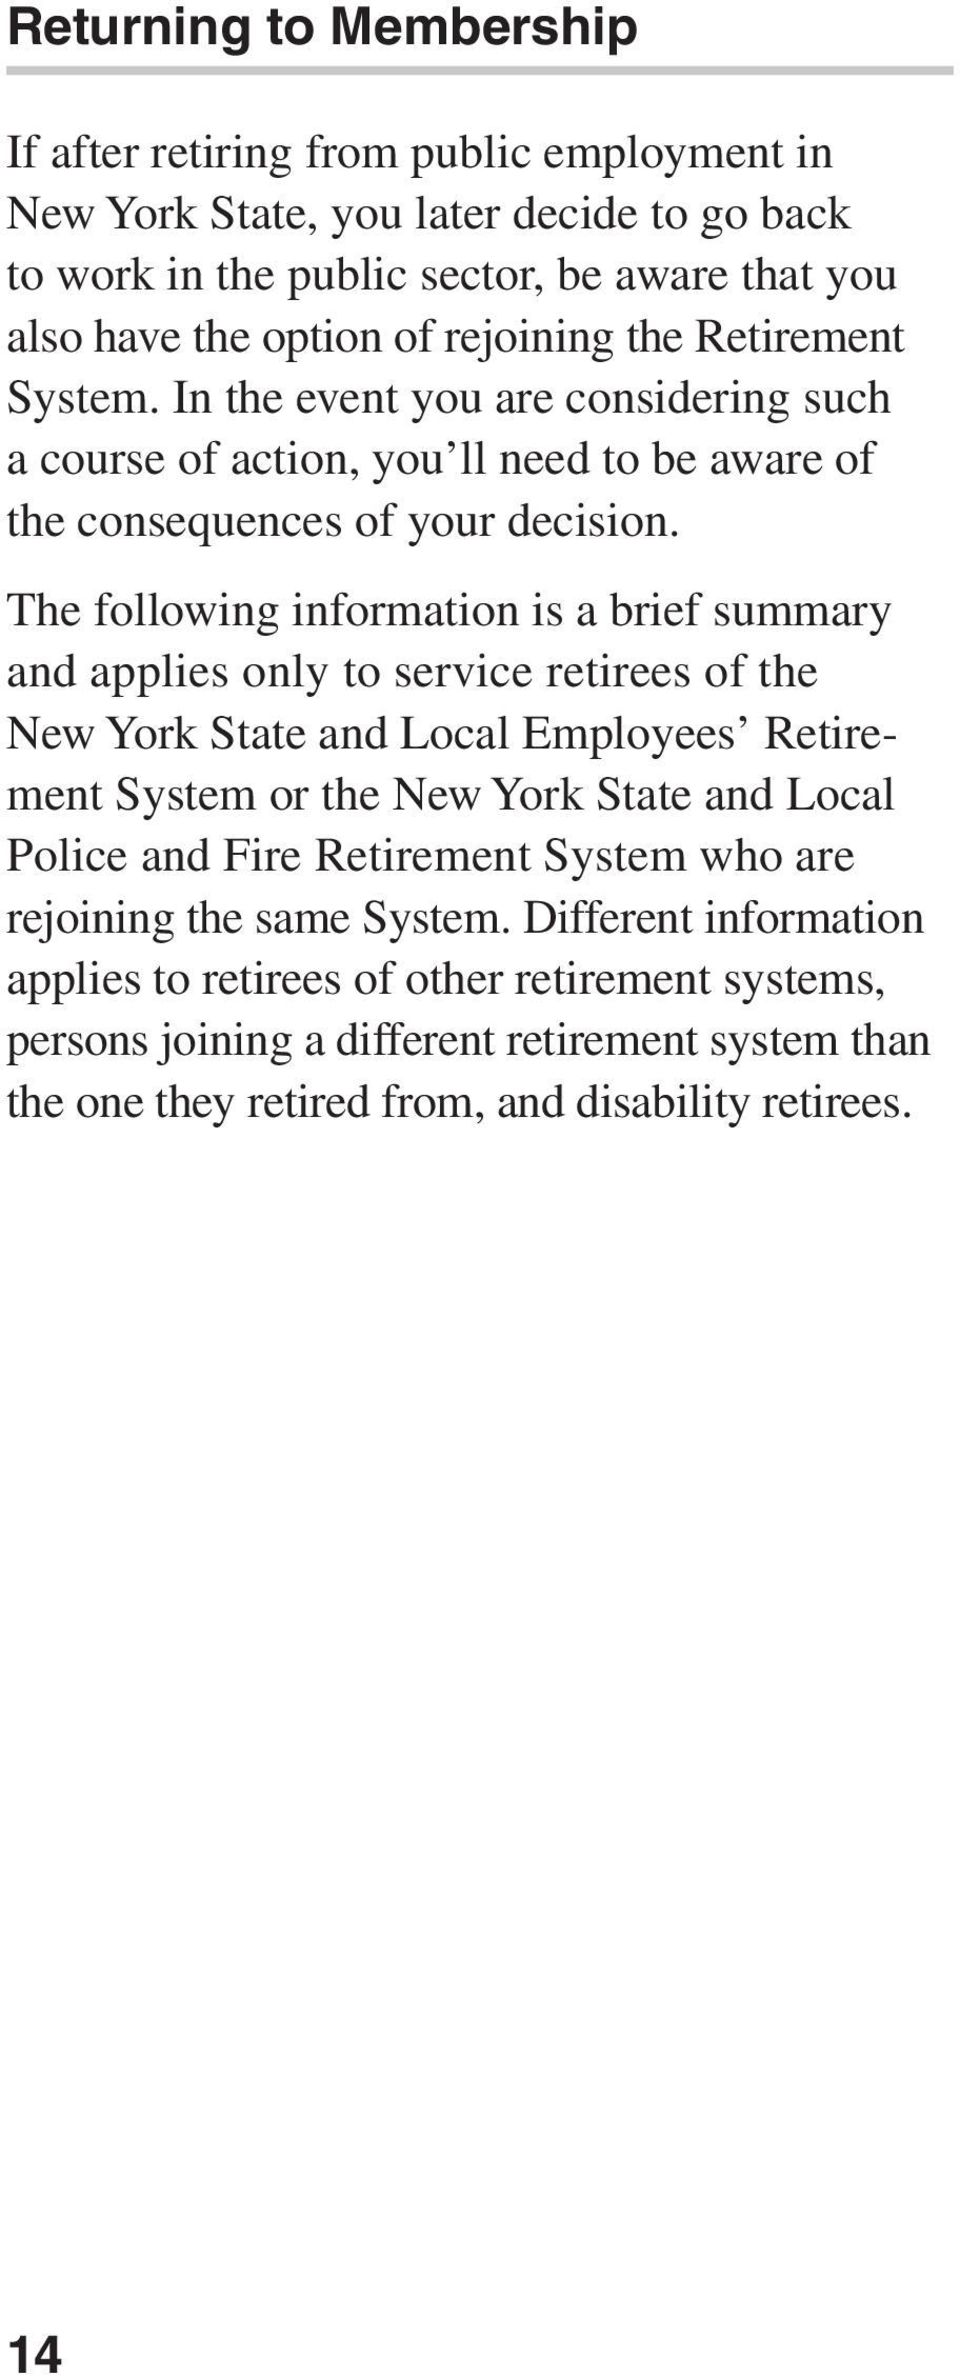 The following information is a brief summary and applies only to service retirees of the New York State and Local Employees Retirement System or the New York State and Local Police and